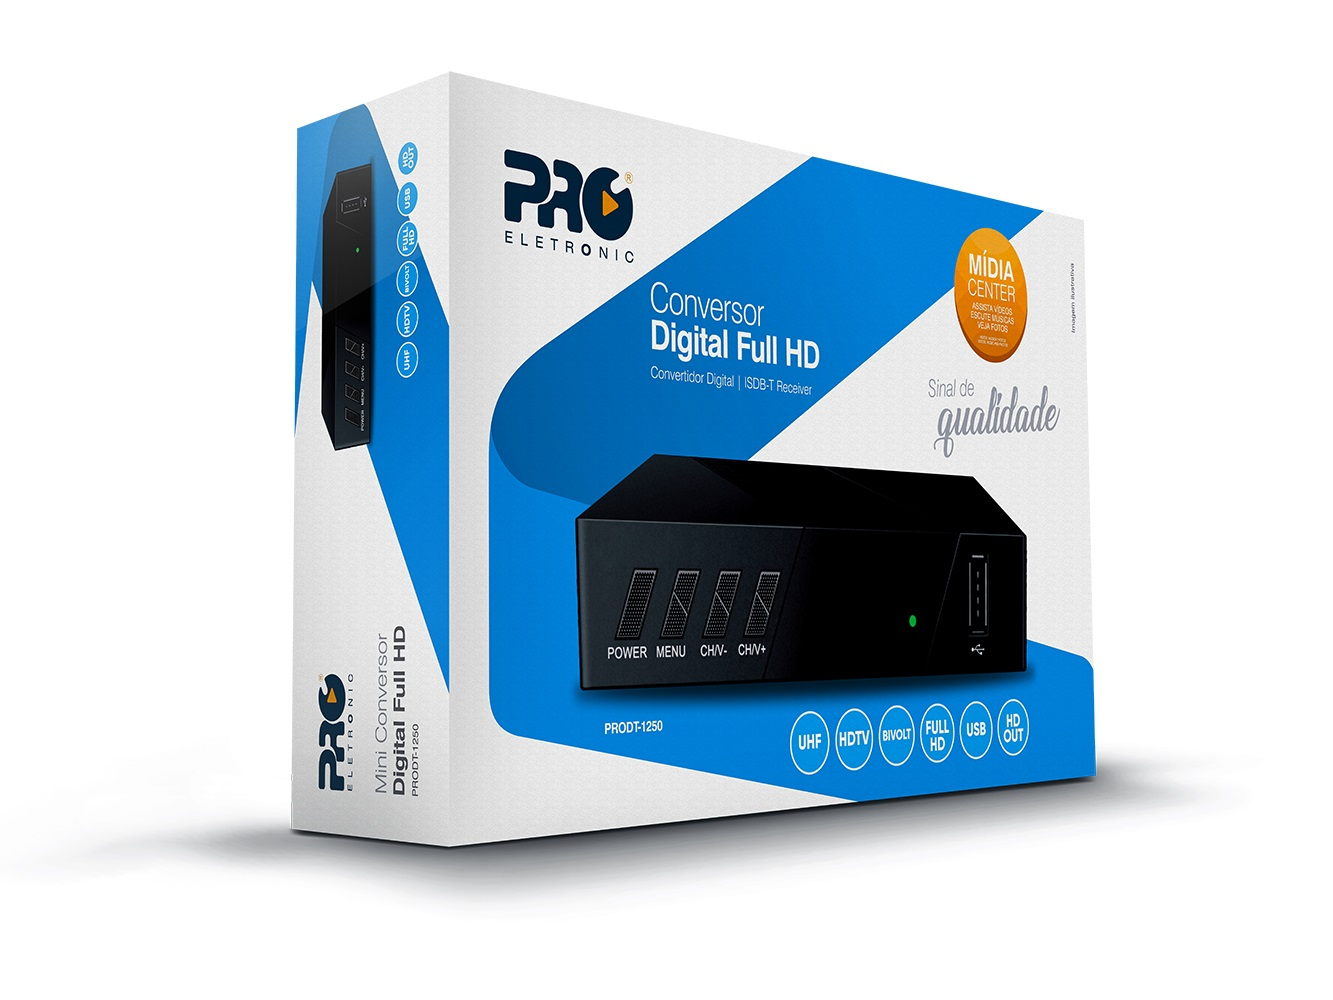 Conversor Digital Full Hd PRODT-1250 Pro Eletronic